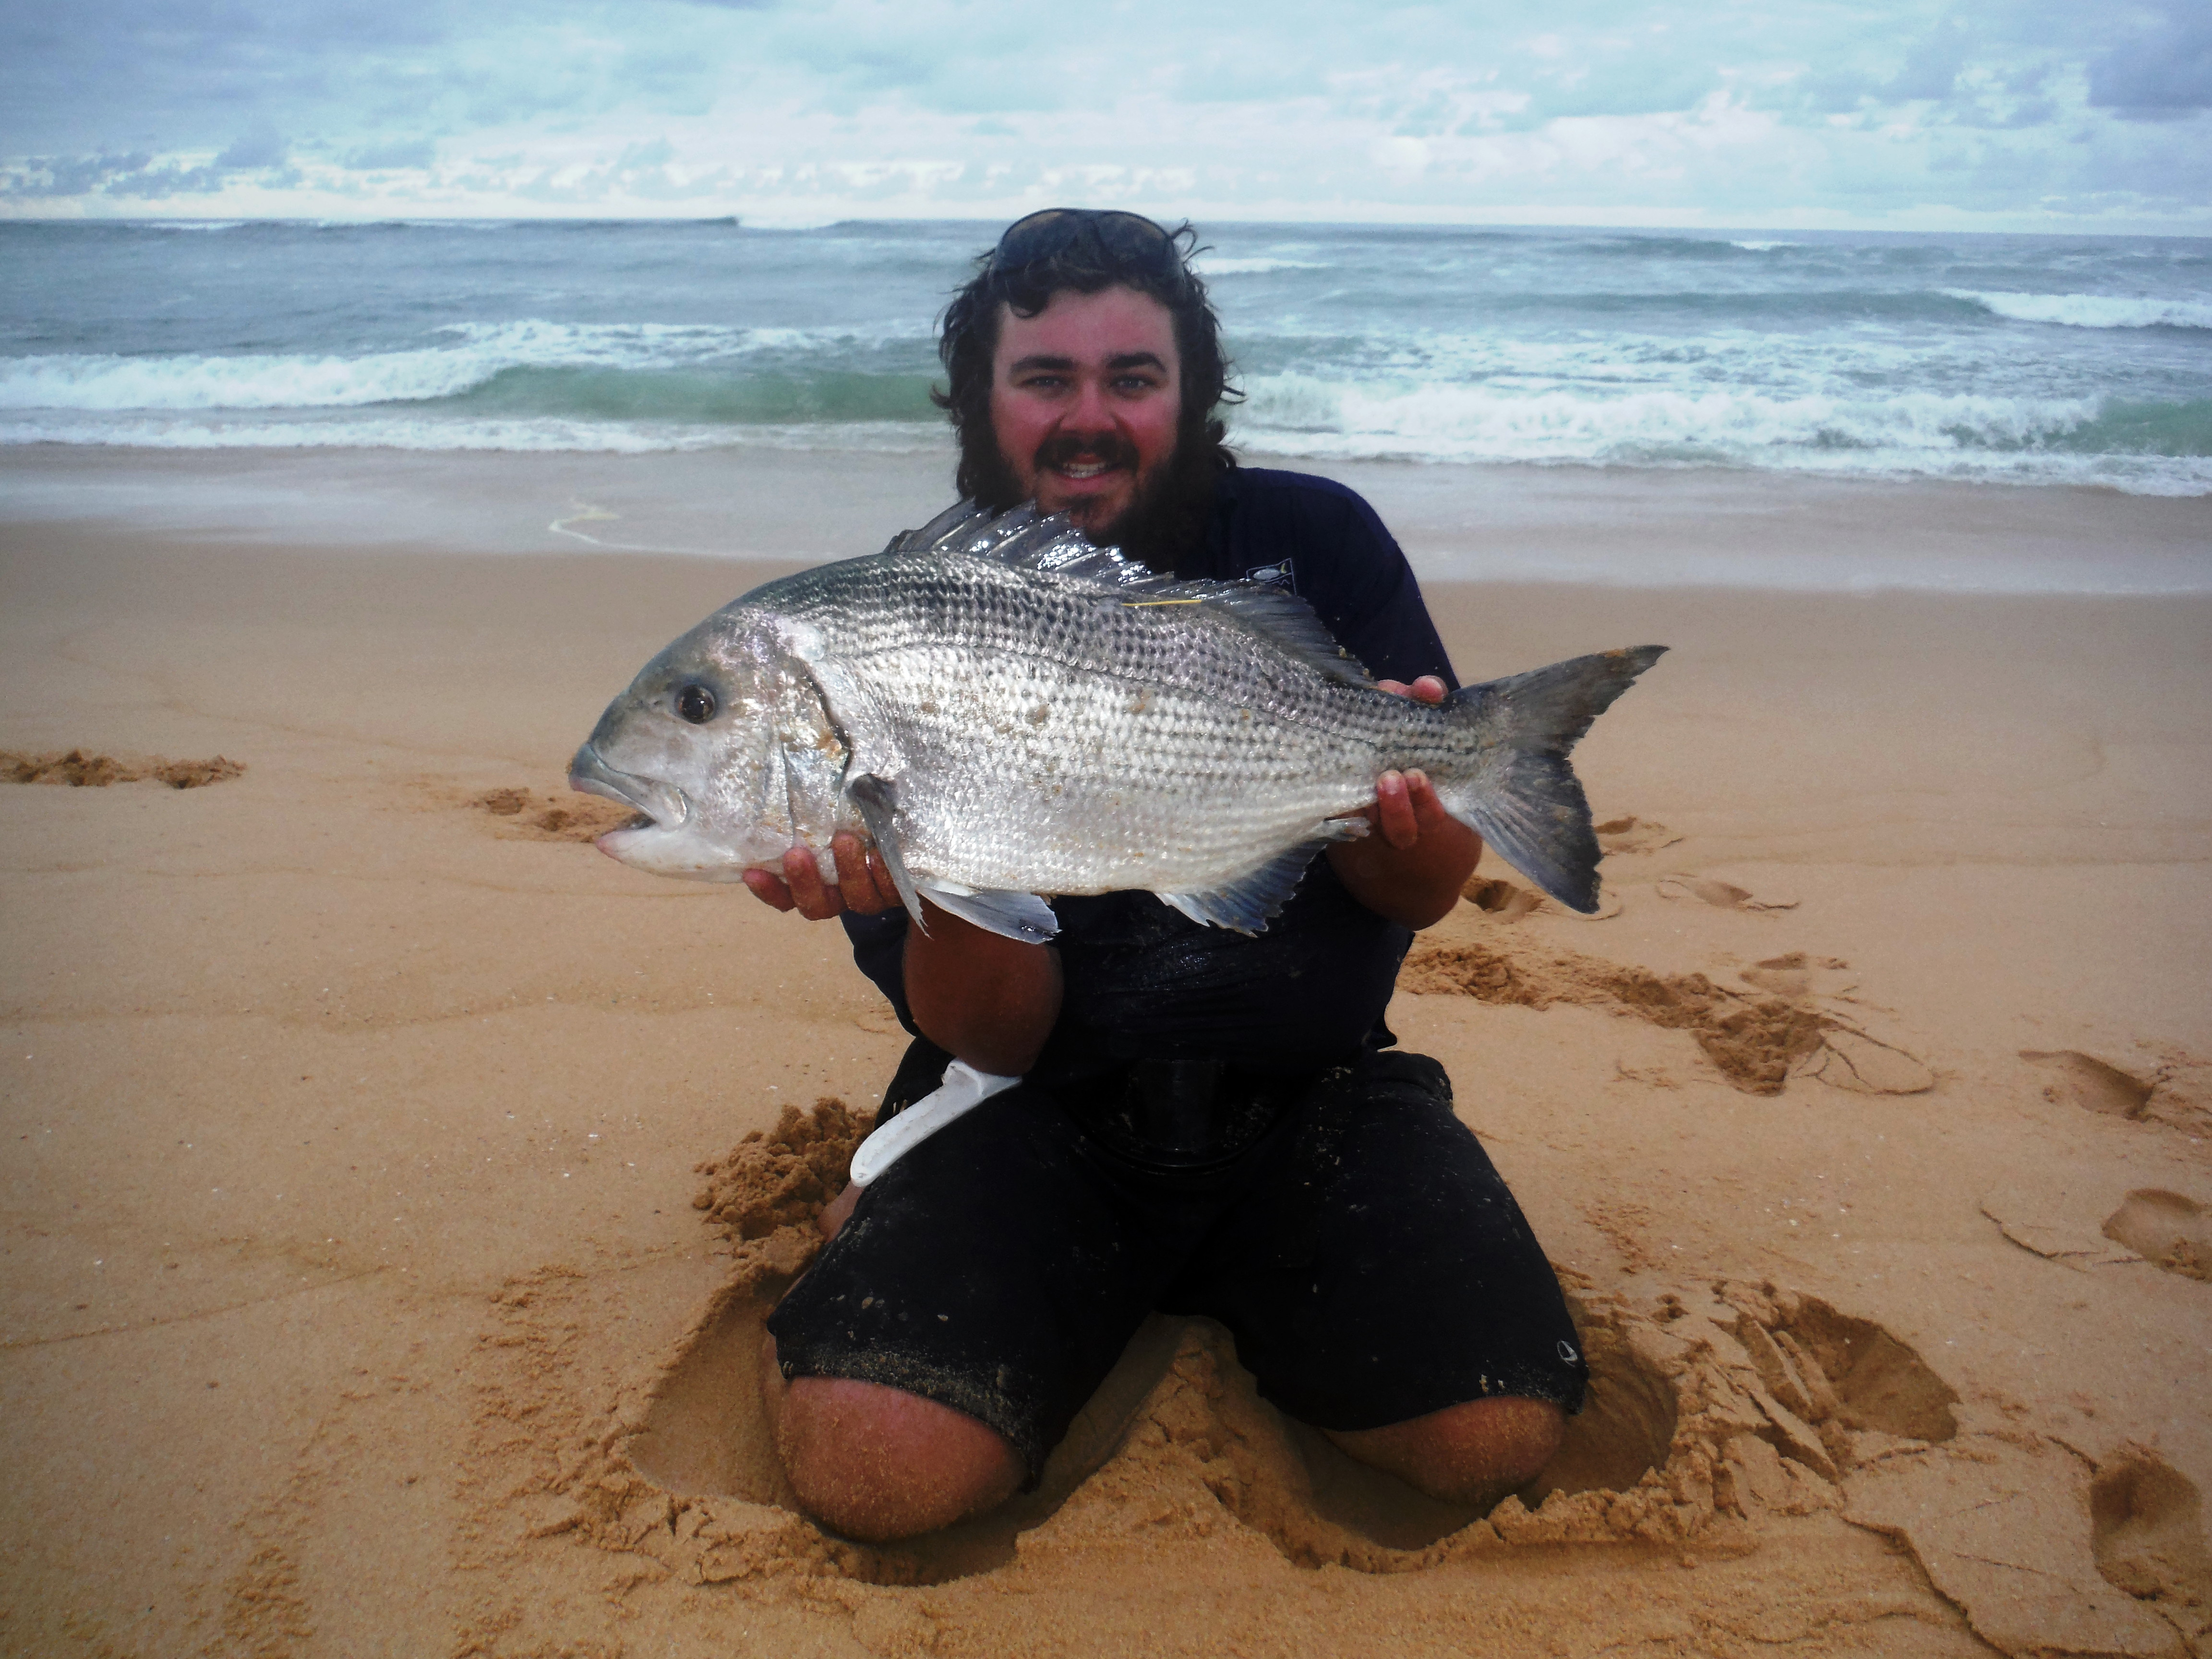 Got this Musselcracker in the Stilbaai area. Fish measured 68cm Fork and 75cm Total. Fish was tagged